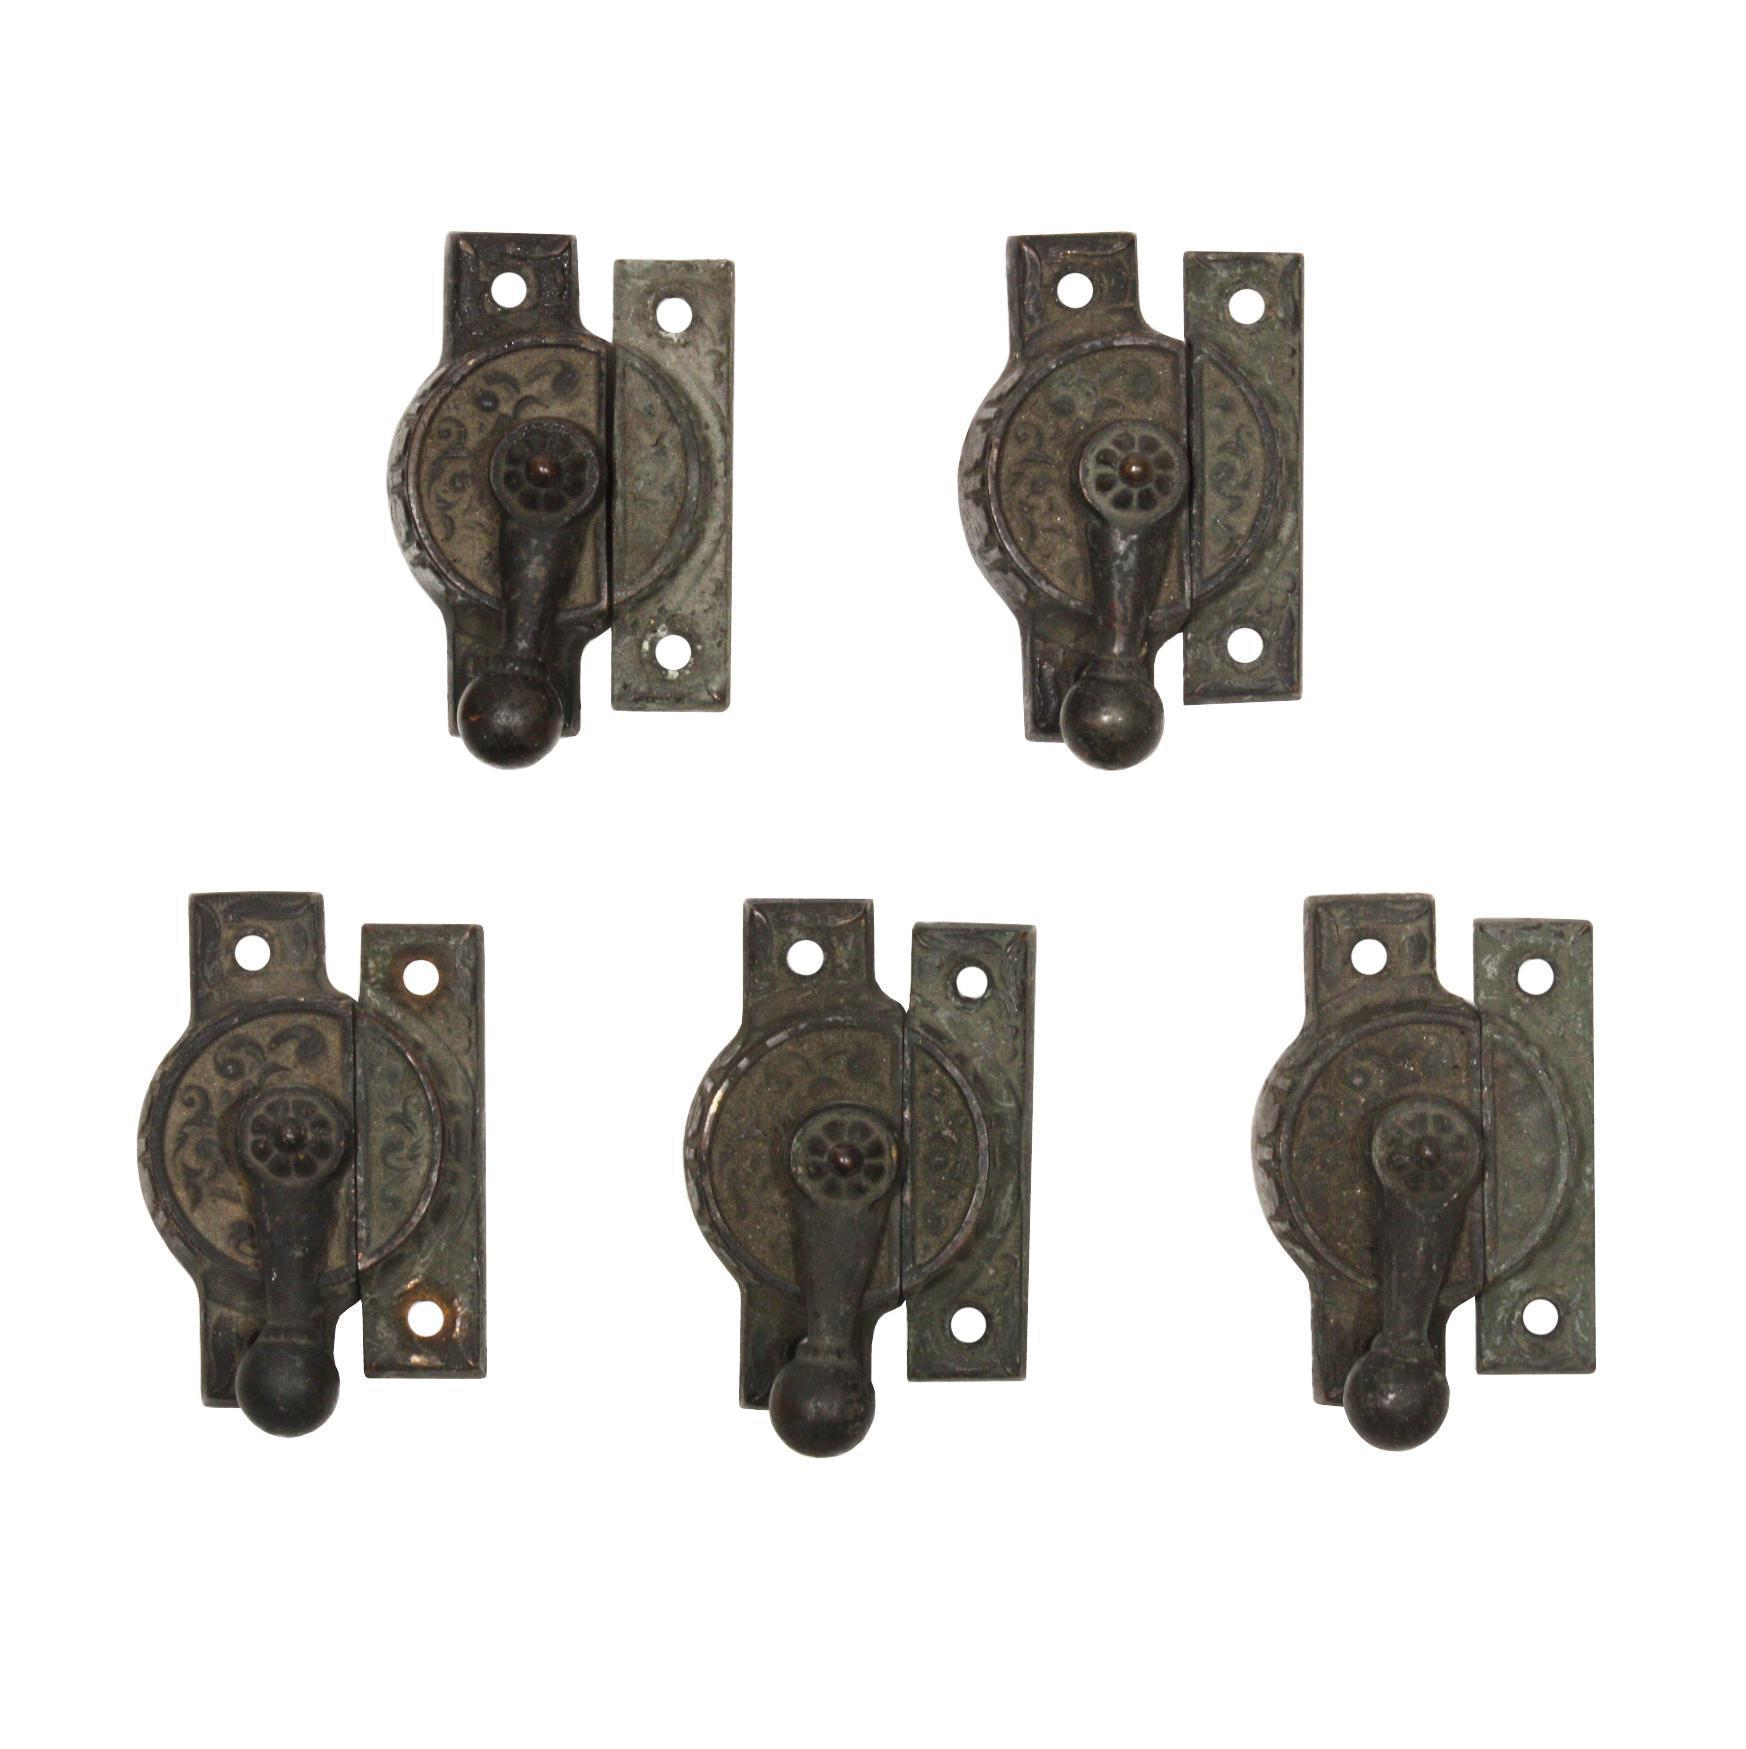 Antique Eastlake Cast Iron Window Locks, c. 1880s